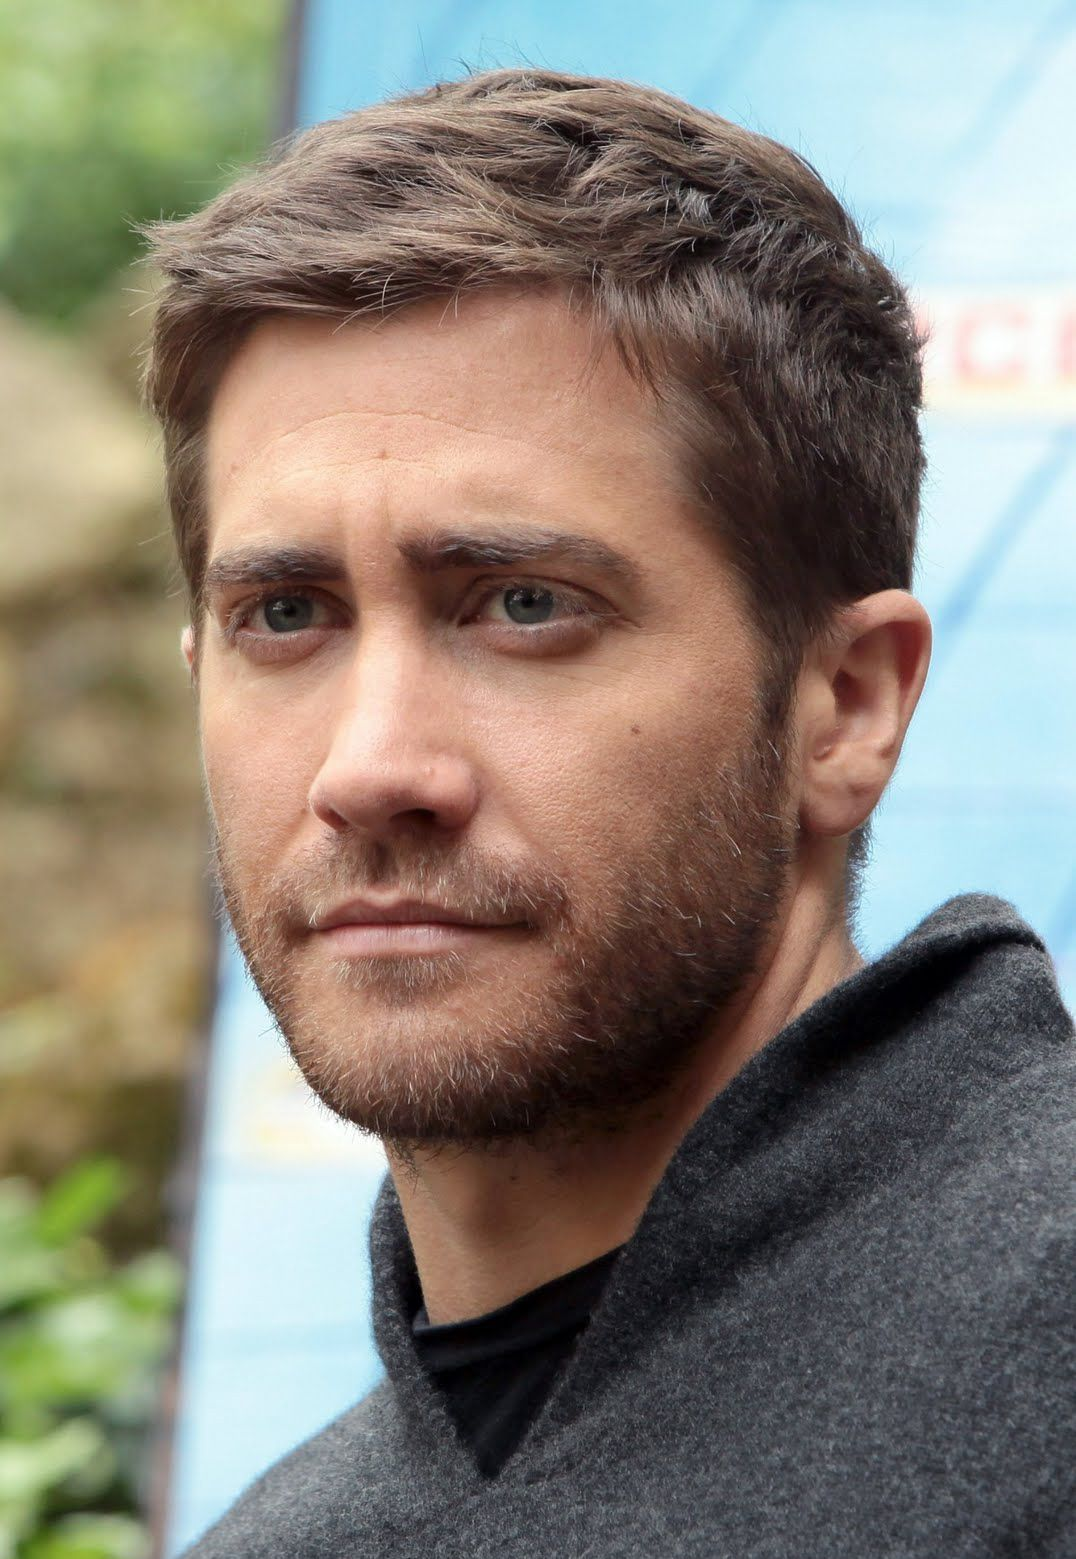 Pin by Lynne Lowe on Jake Gyllenhaal in 2019 | Jake ...